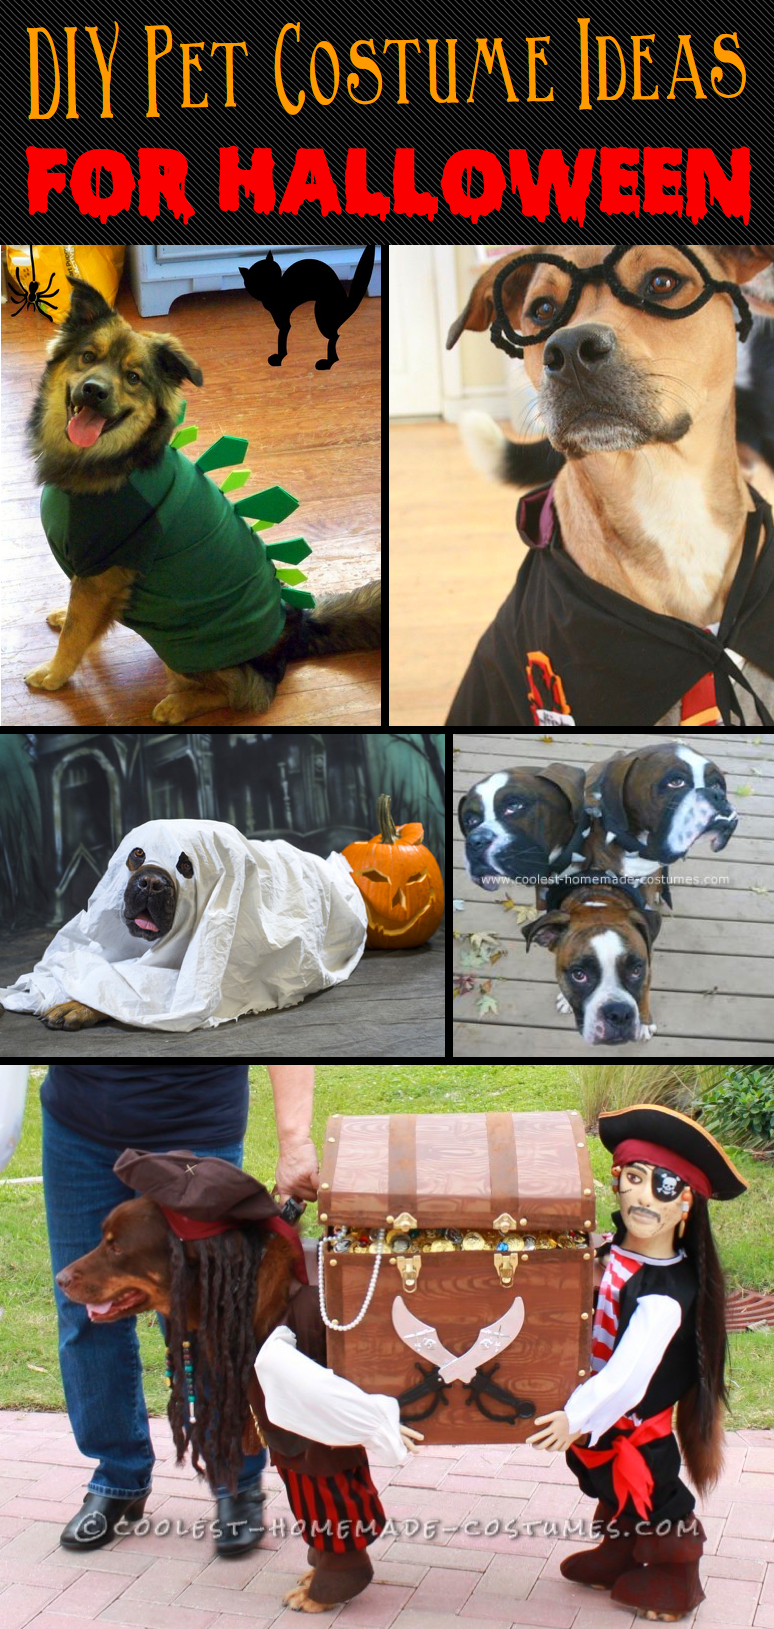 20-incredibly-adorable-yet-simple-diy-pet-costume-ideas-for-halloween